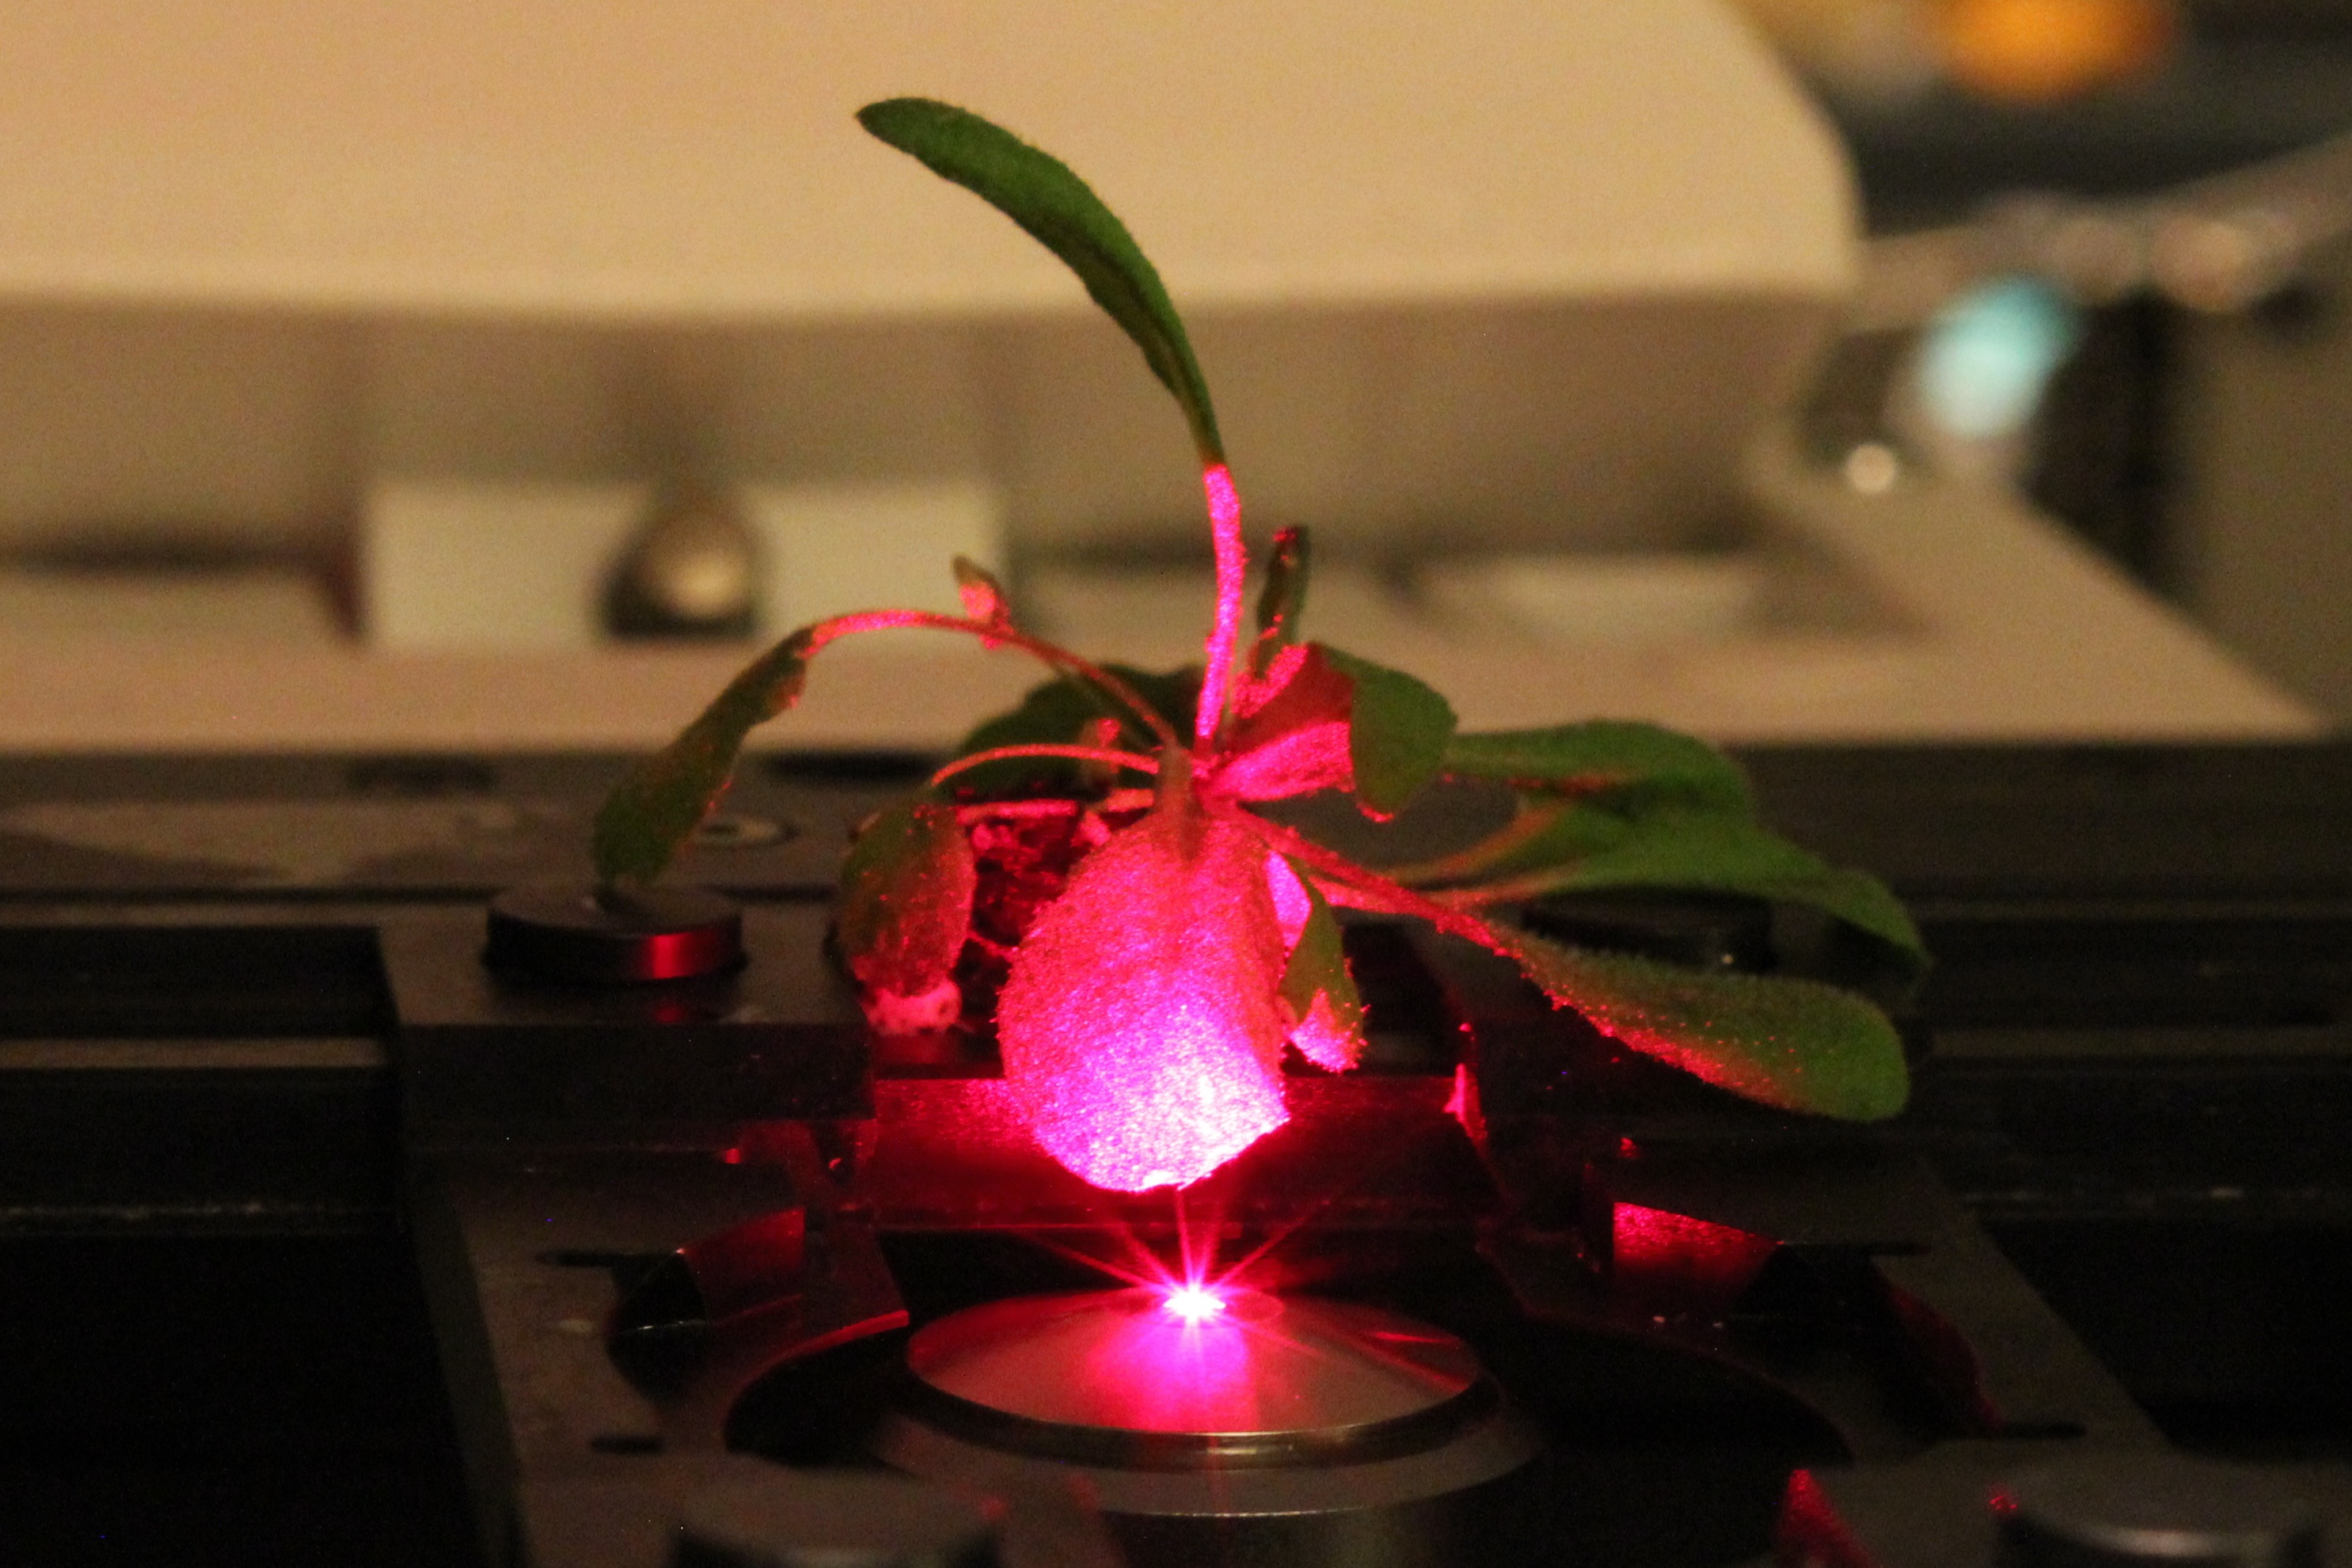 bionic plants  synthetic nanoparticles enhance